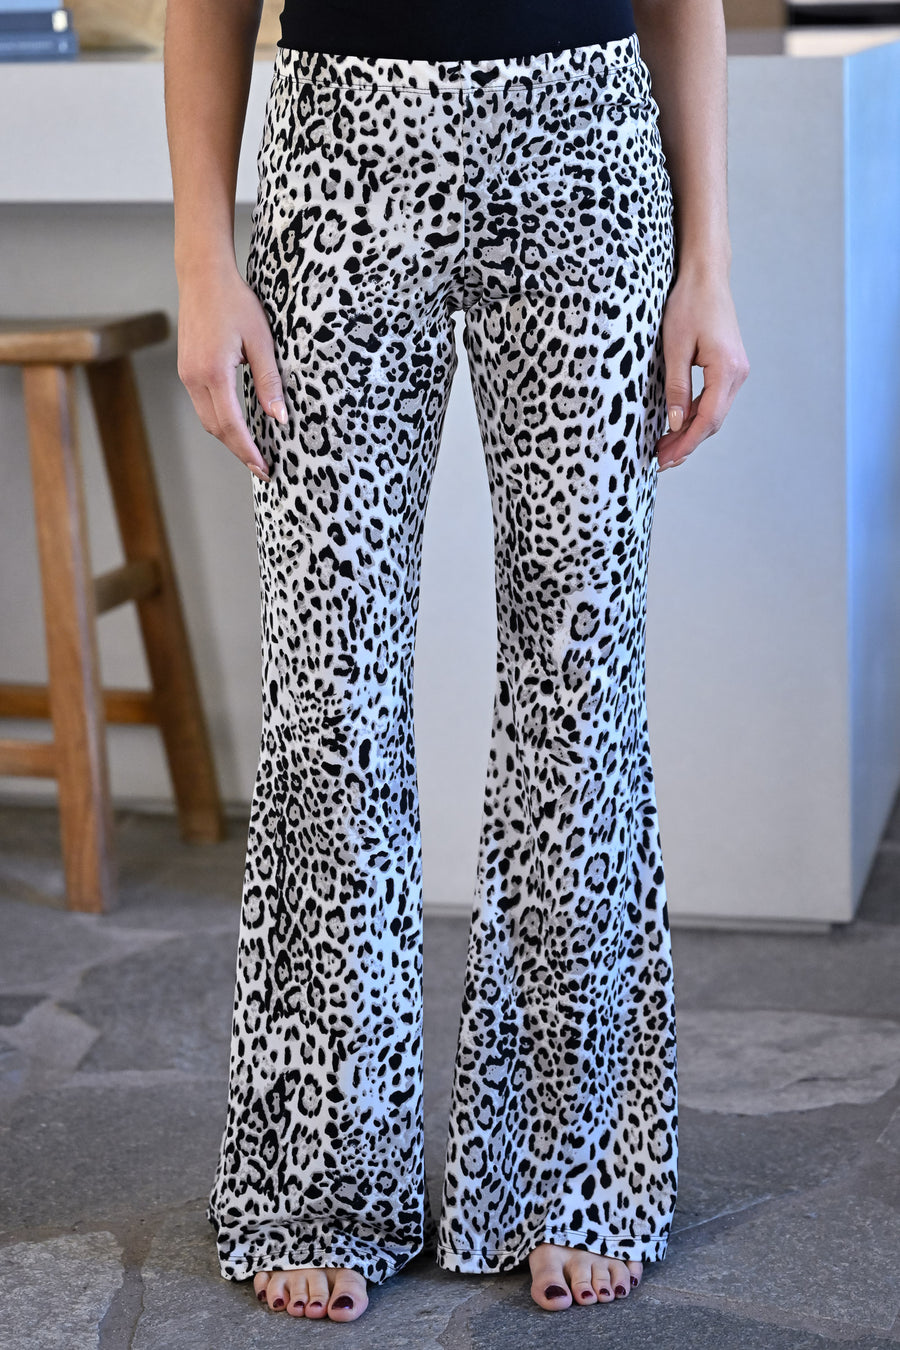 Feisty Flare Pants - Leopard womens trendy elastic waistband fit n flare pants leopard print closet candy side